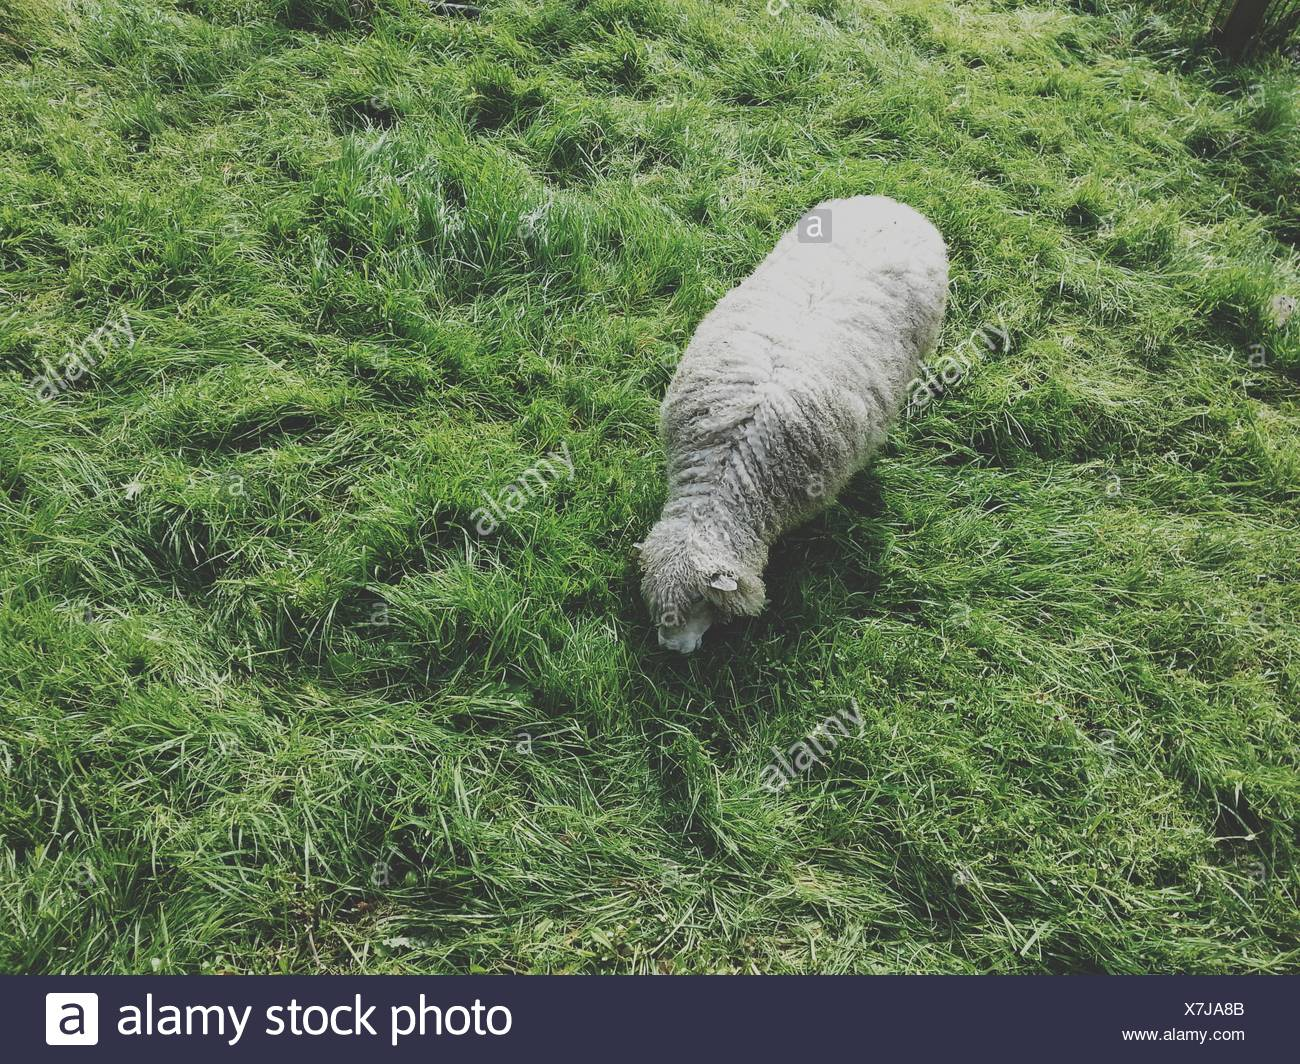 Overhead view of a sheep in a field - Stock Image